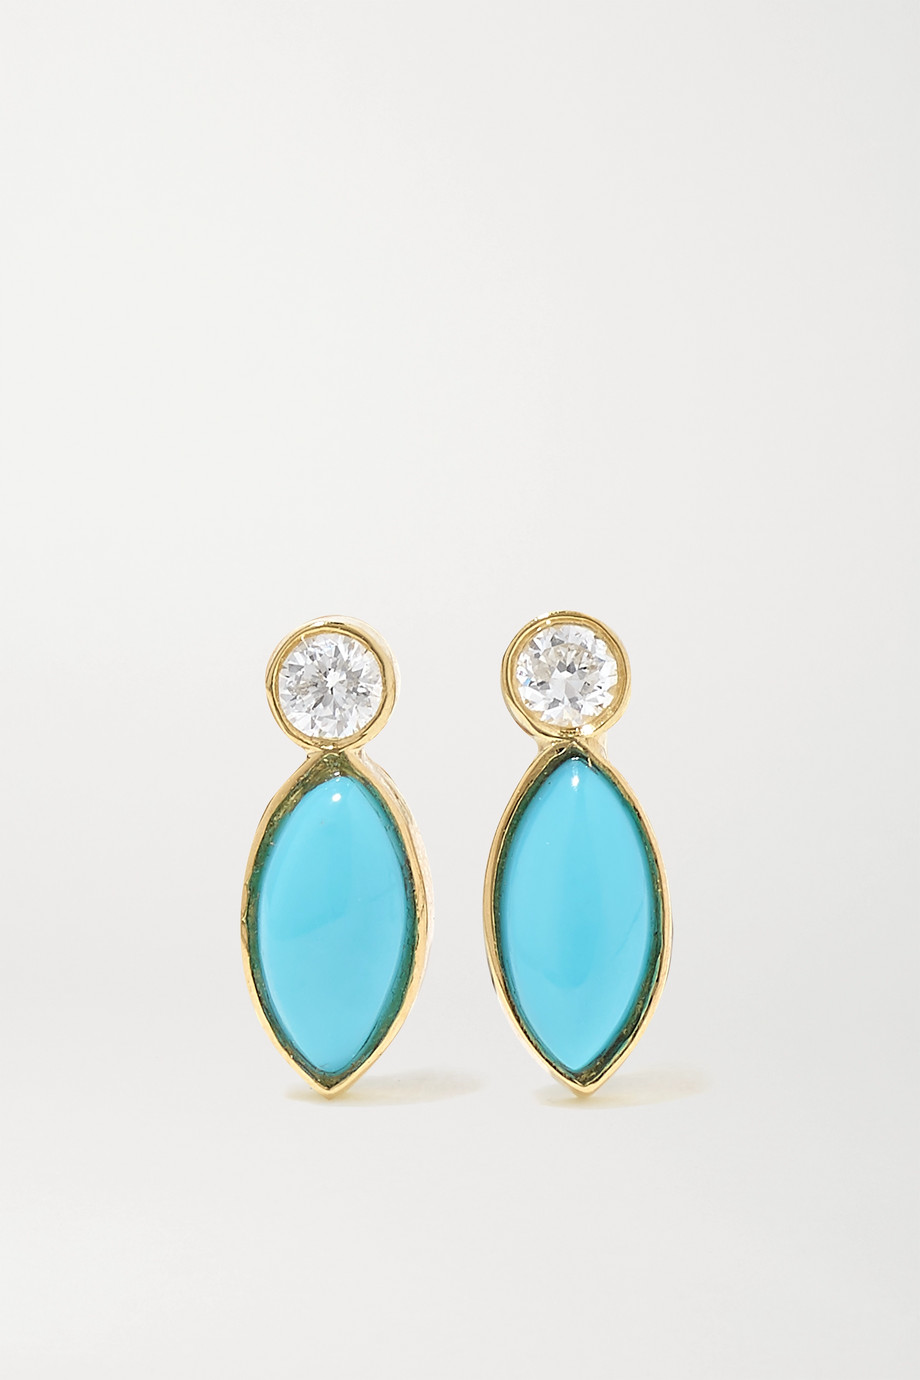 Jennifer Meyer 18-karat gold, turquoise and diamond earrings